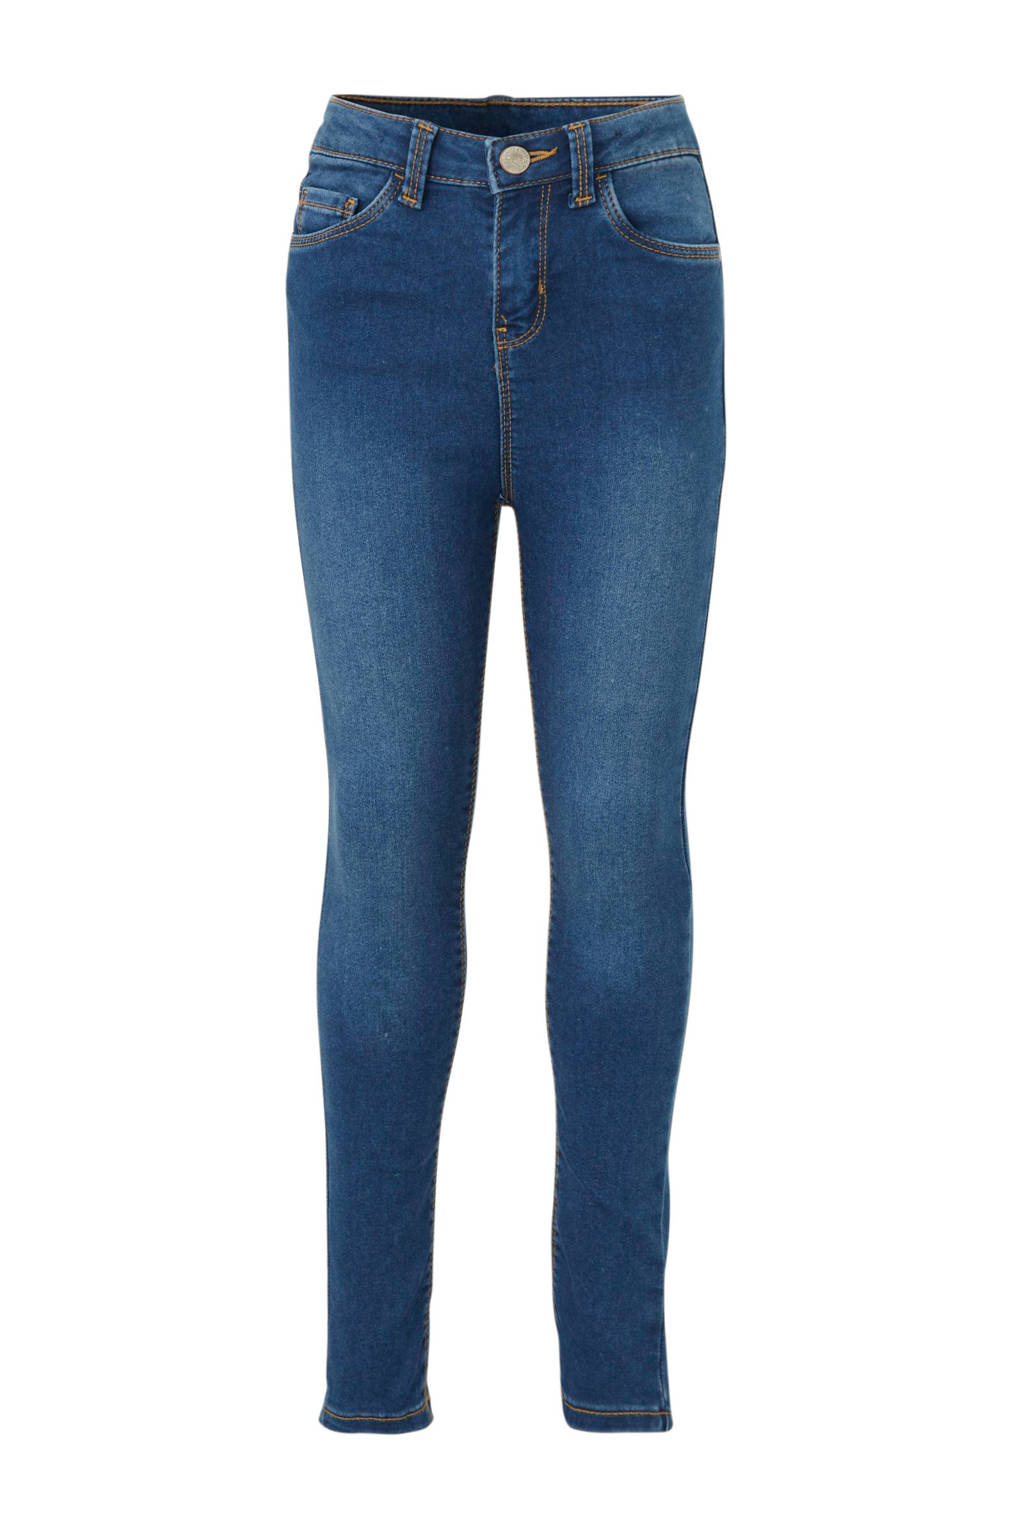 C&A Here & There skinny jeans blauw 34 inch, Blauw